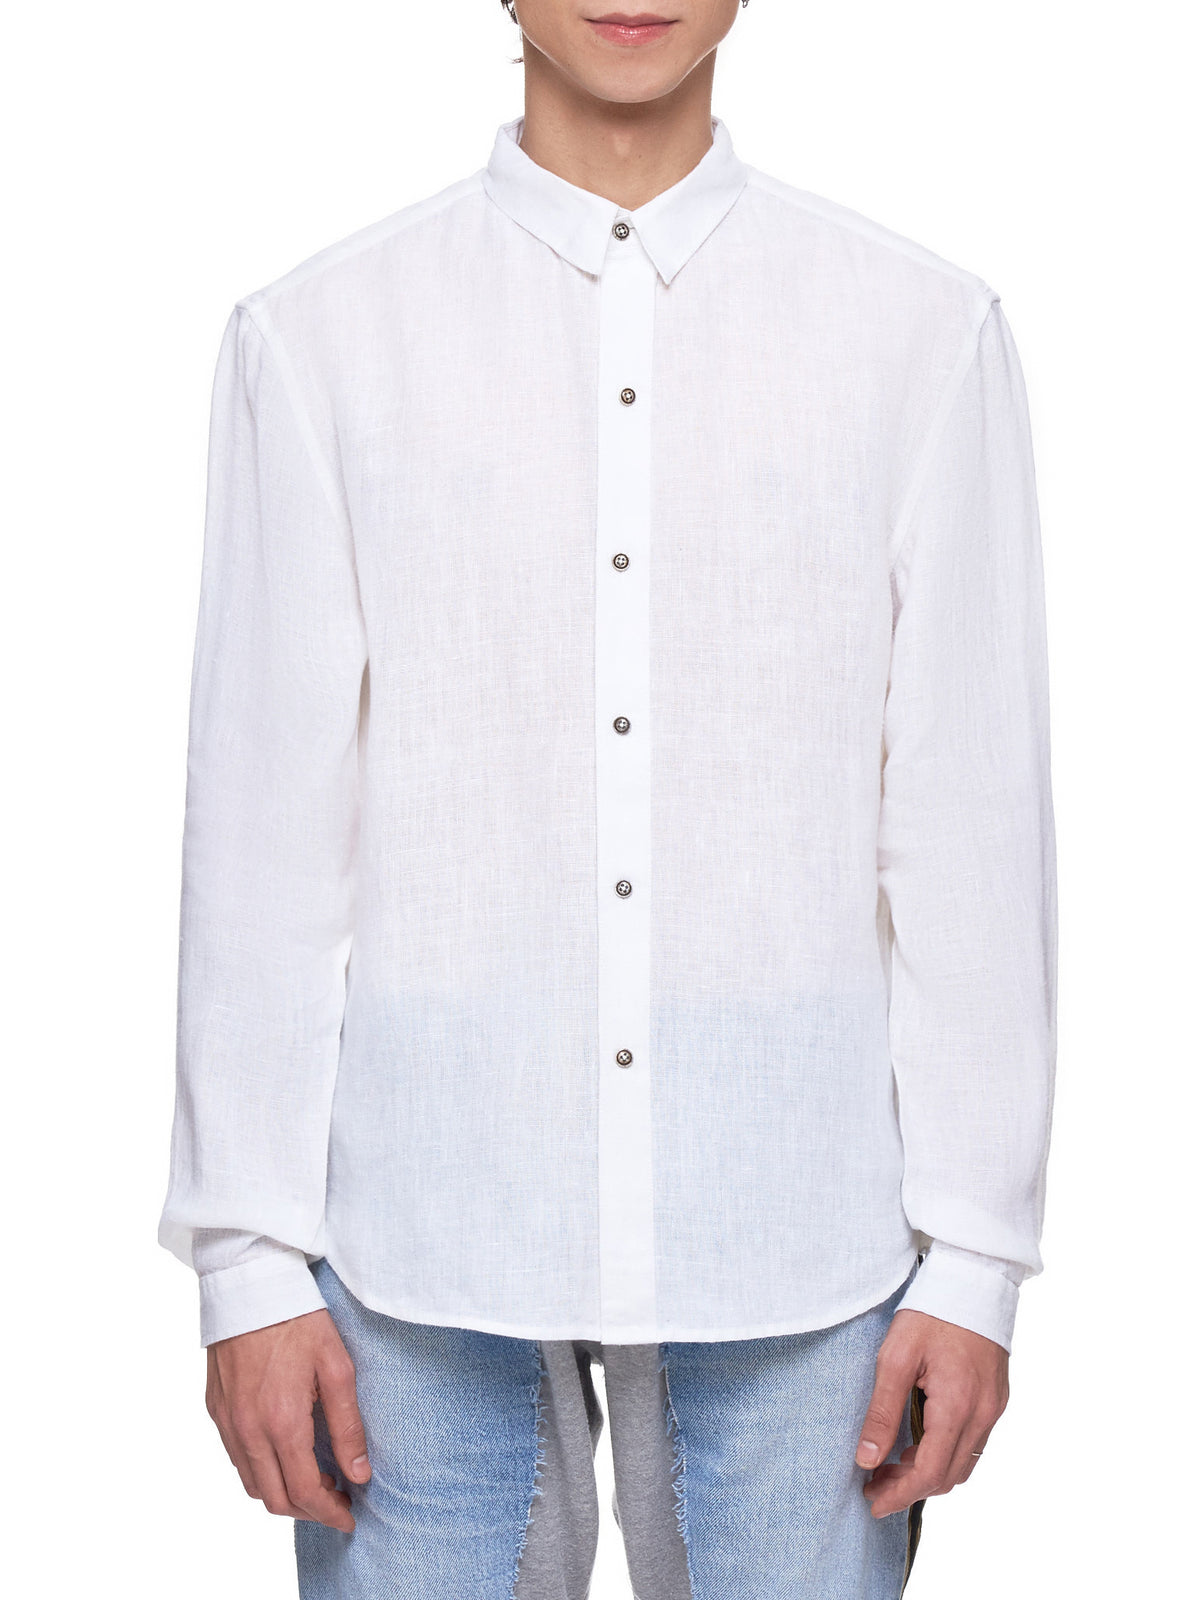 de7416064ef DENIS COLOMB. Hooded Shirt · Dress Shirt (DCM-WM1-WHITE) ...